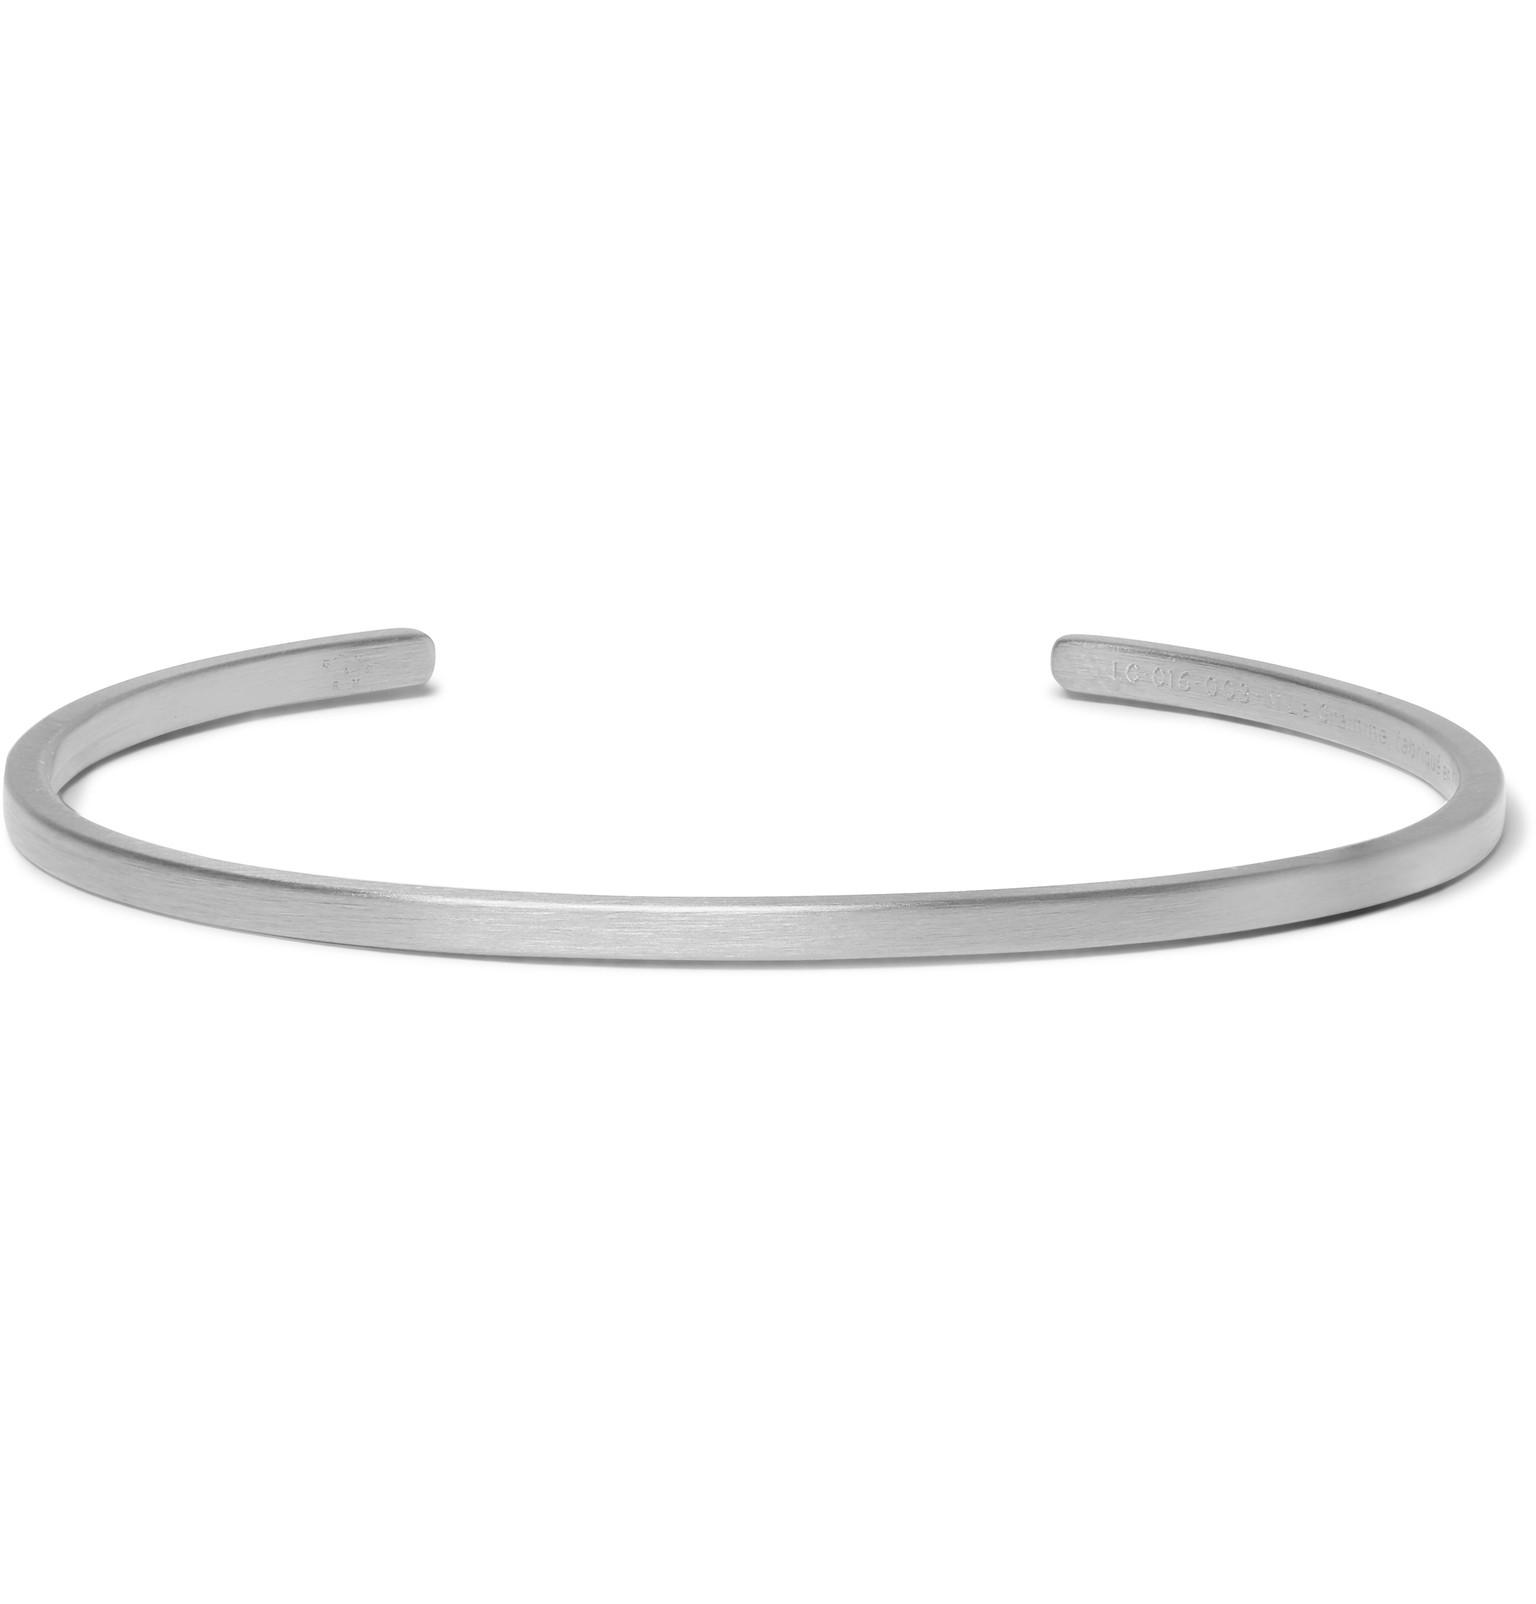 Le Gramme Le 7 Brushed Ruthenium-plated Sterling Silver Cuff - Black Xyciq6